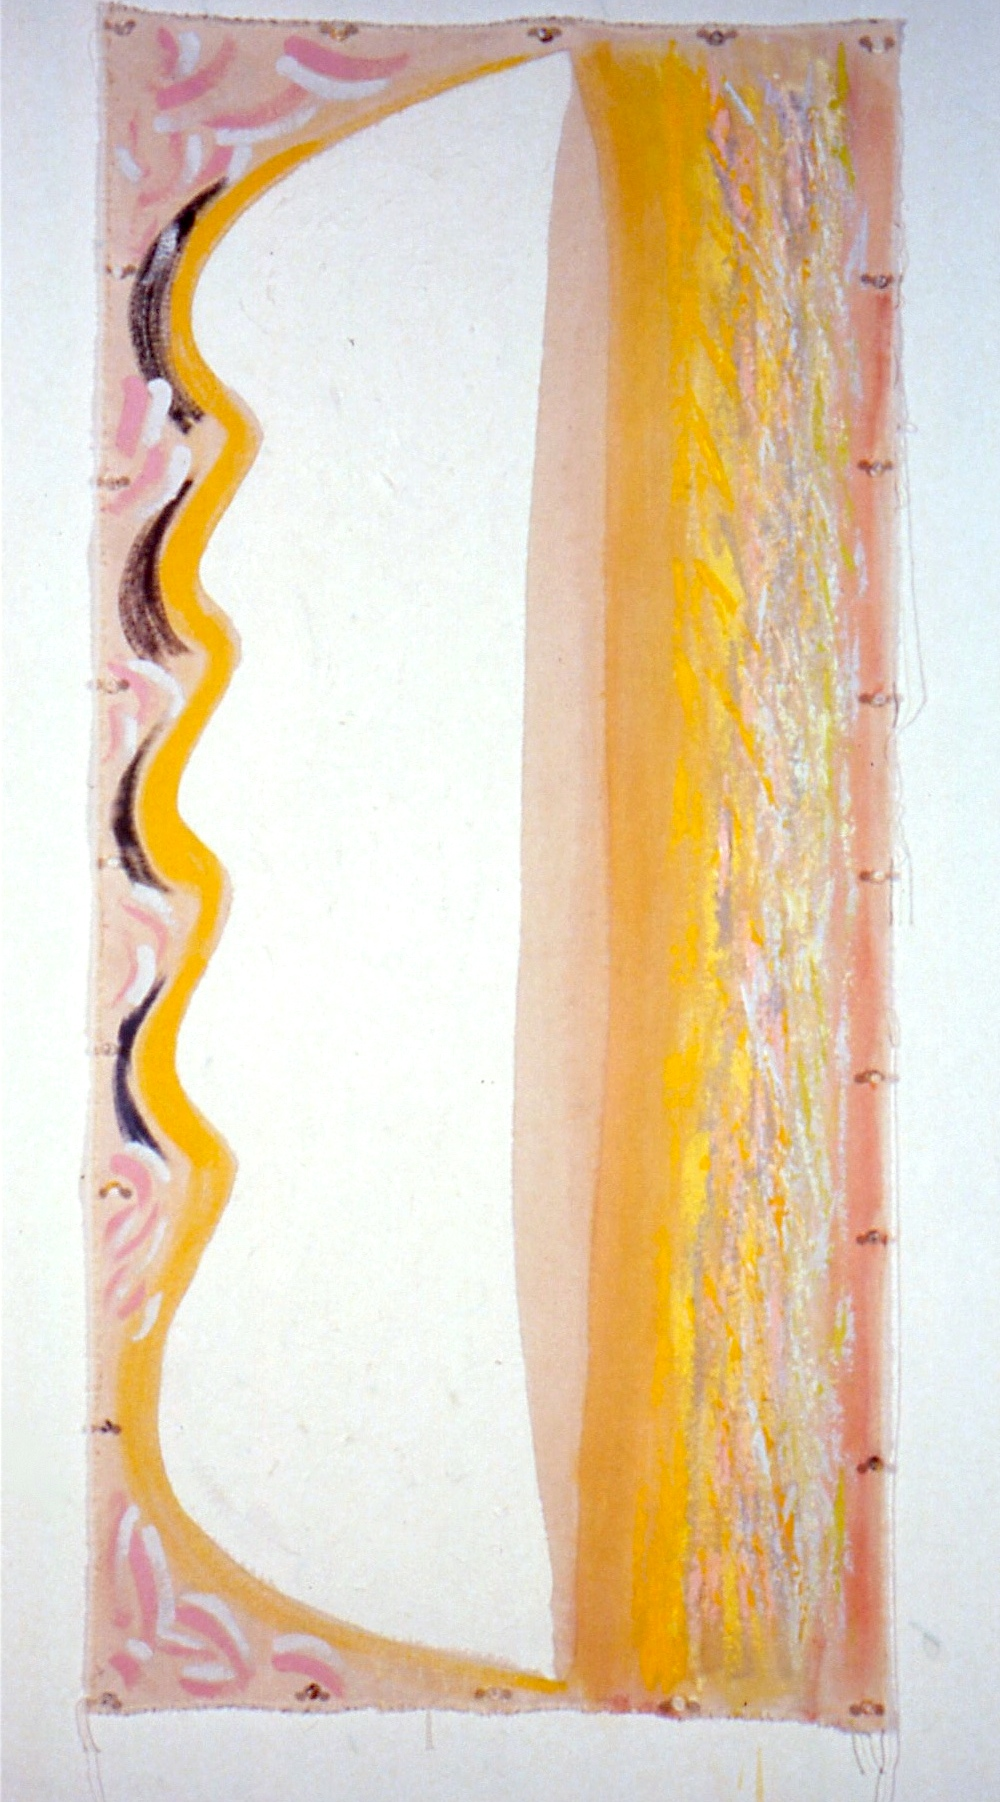 Islam, 1995, gouache on paper